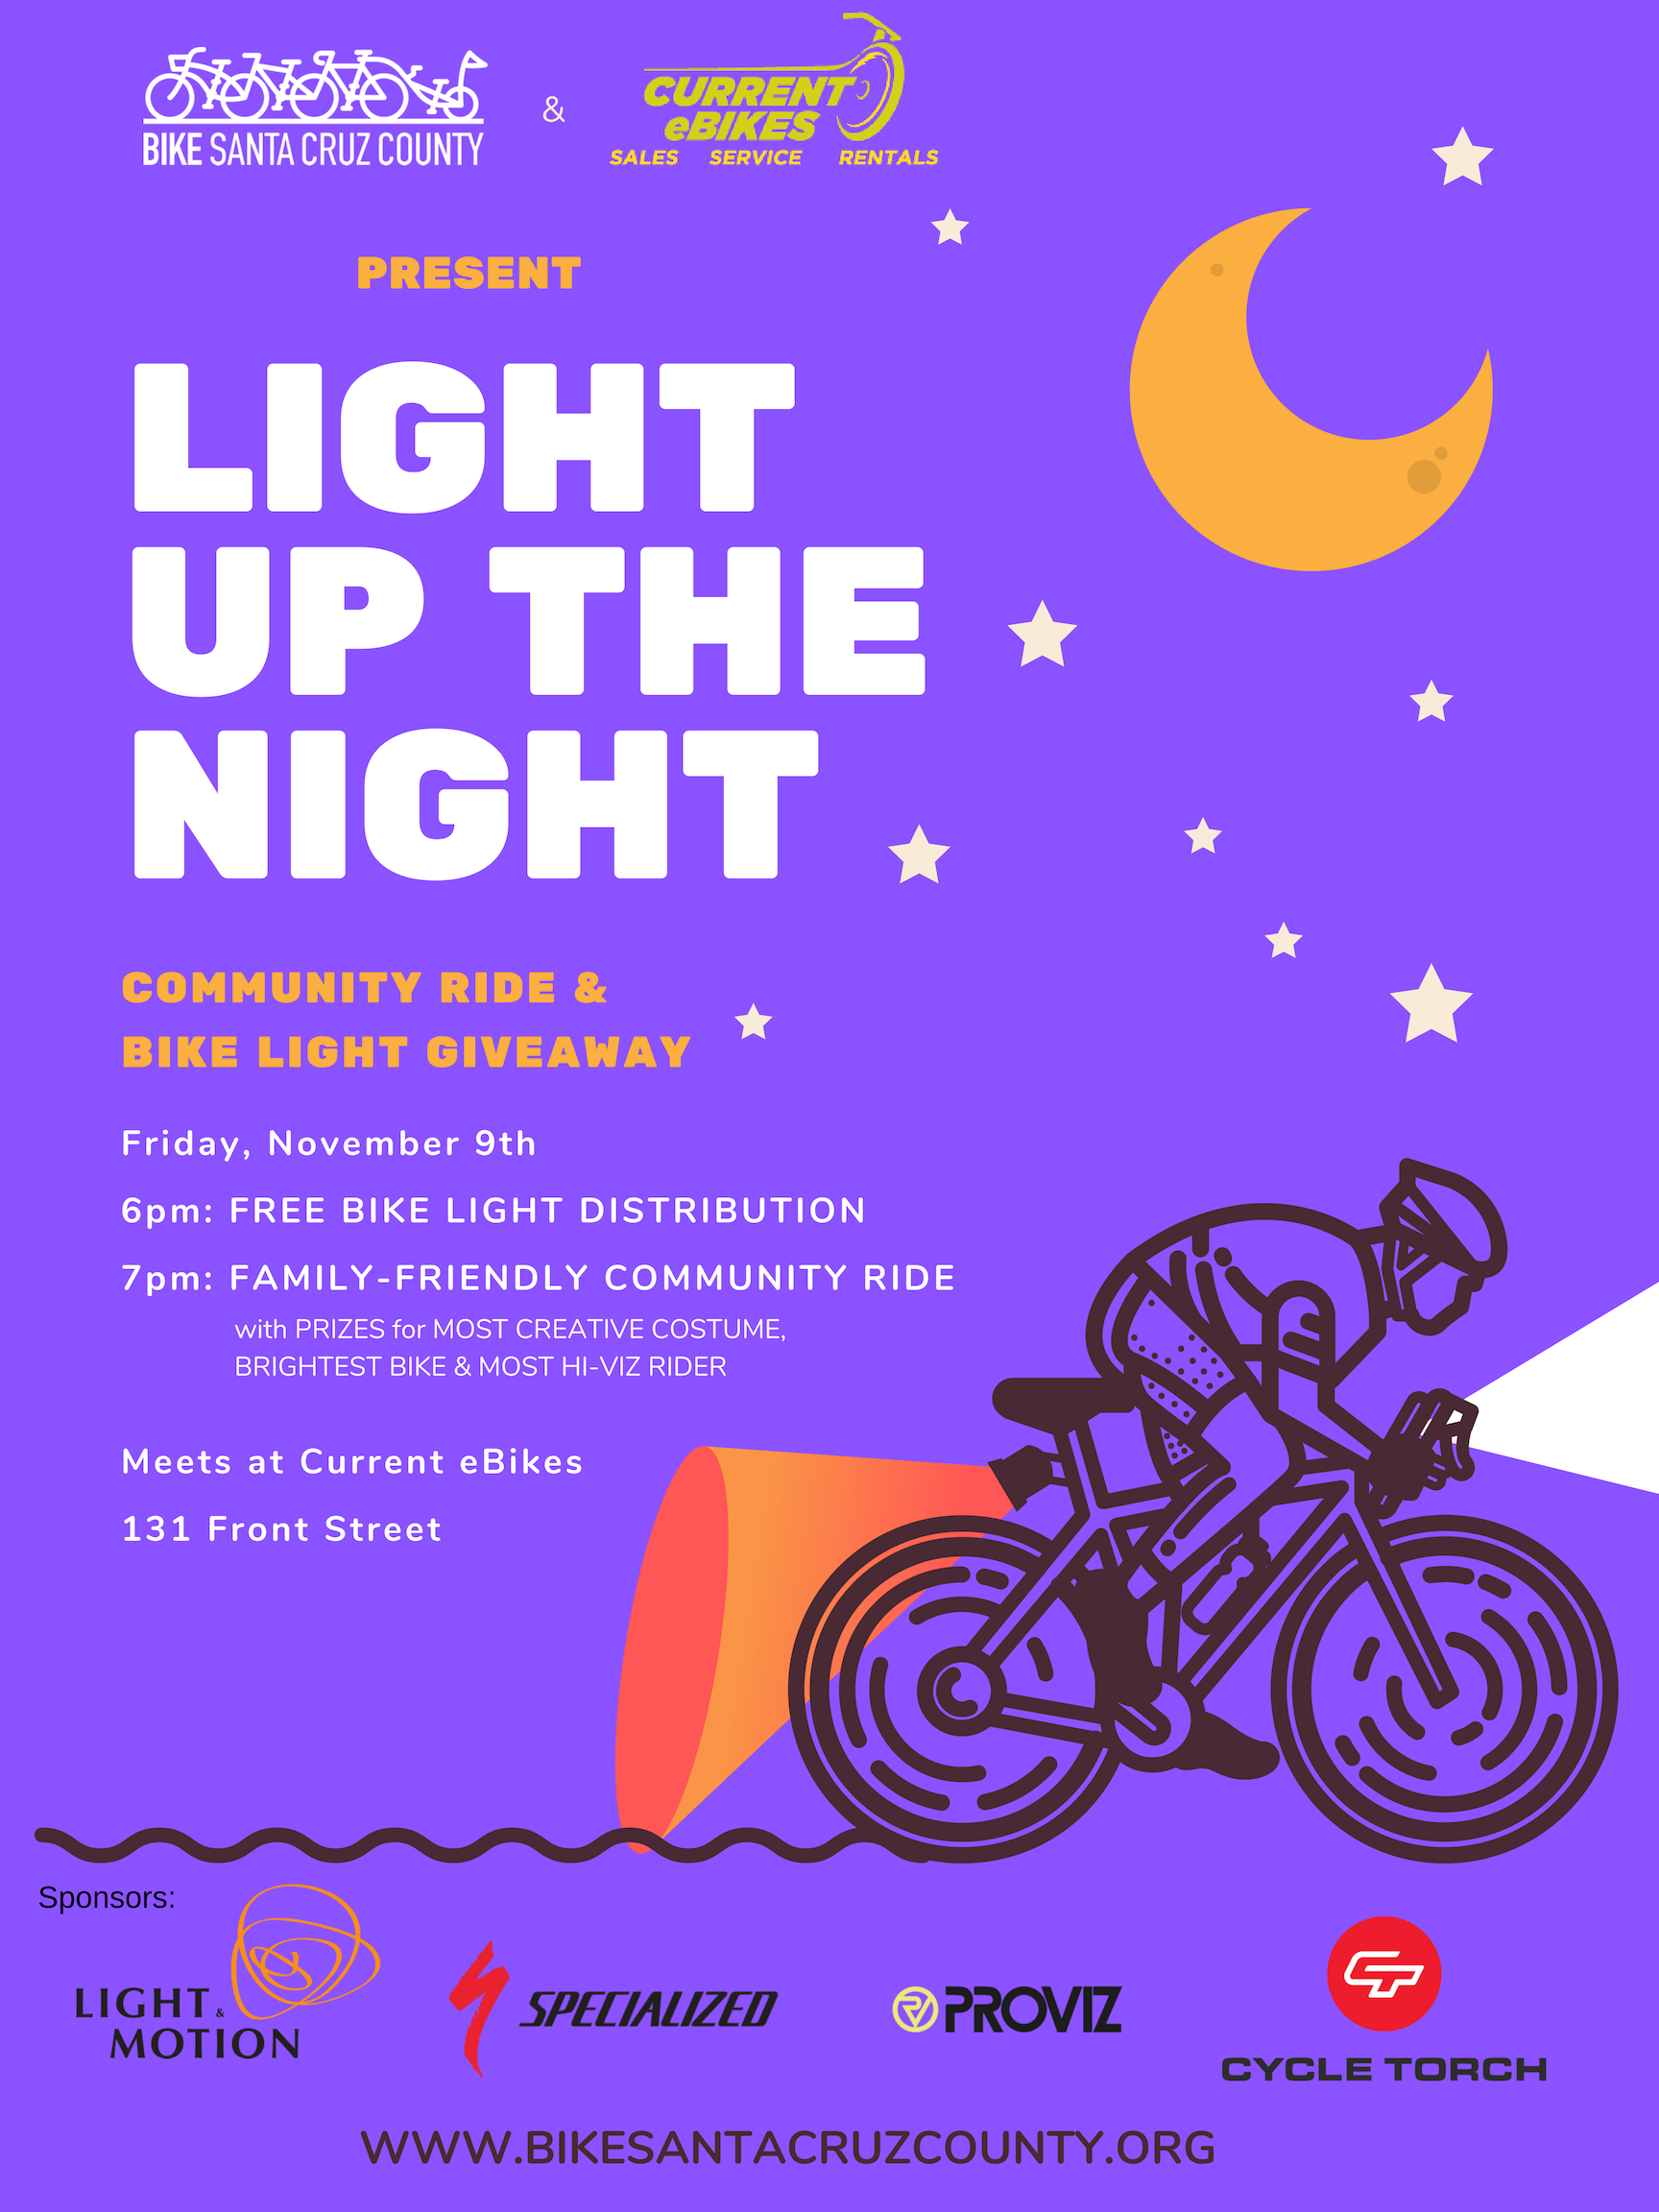 SC Bike Party: Light Up the Night